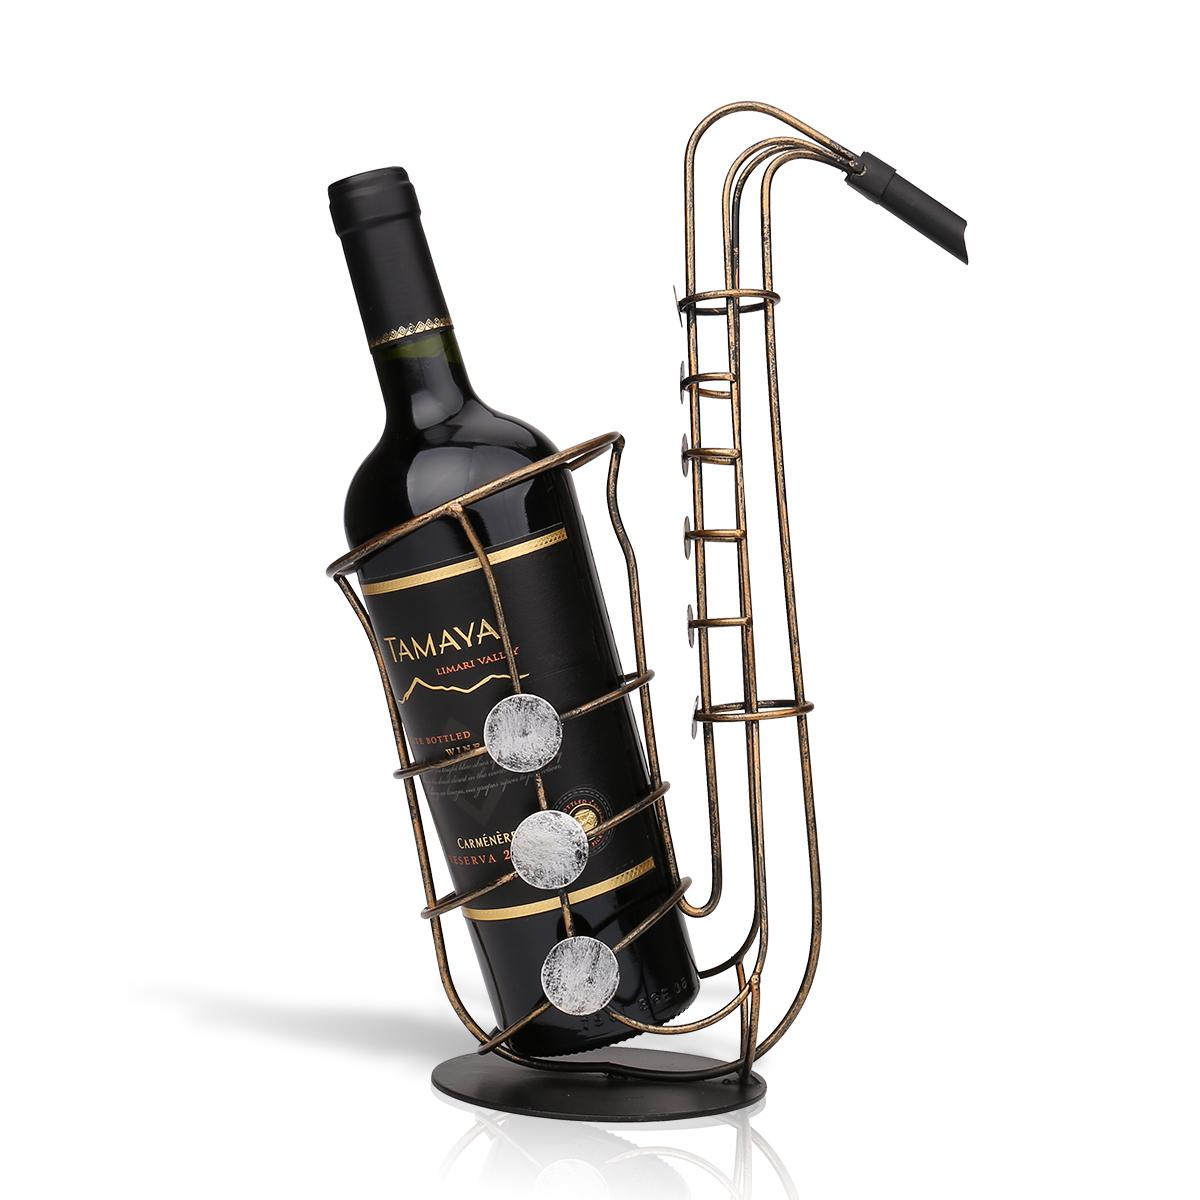 Wine Bottle Holder Sax Metal Figurine